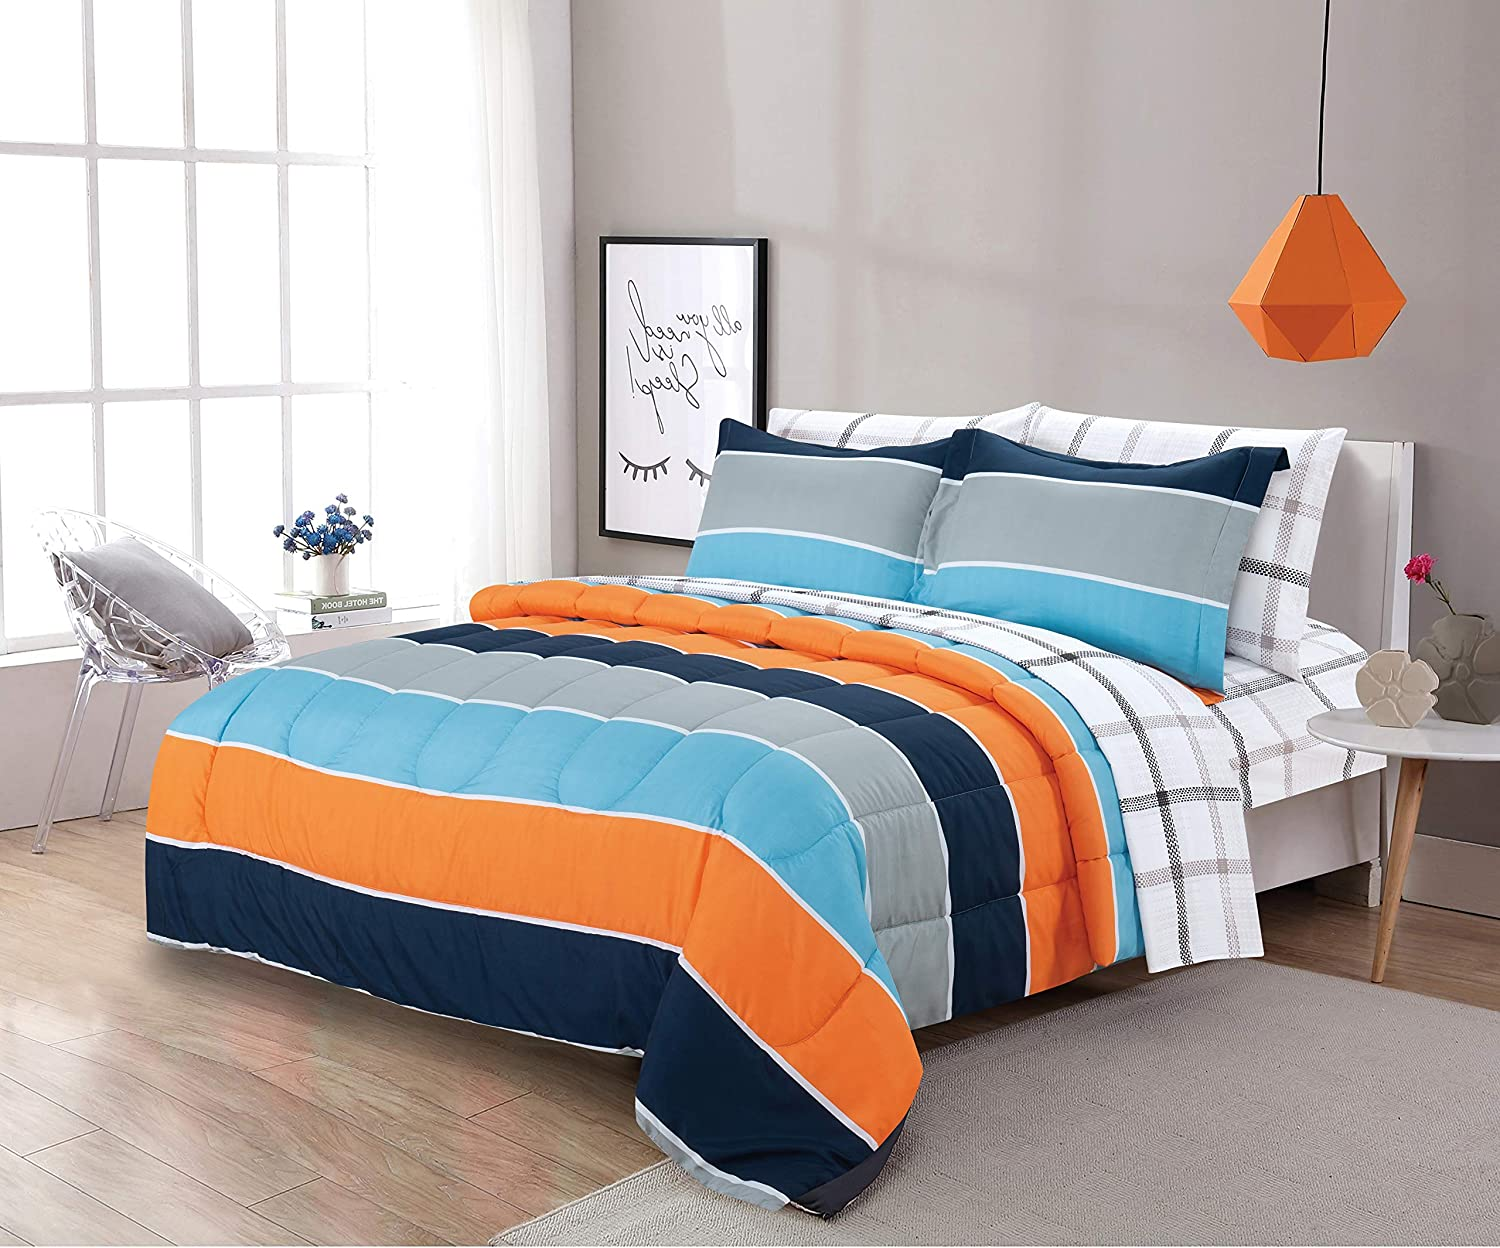 Sapphire Home 5 Piece Twin Size Comforter Set Bed in Bag with Shams, Sheet Set Plaid Design, Blue Orange Gray Stripes Print Multicolor Boys Kids Girls Teens Bedding w/Sheets, (Kids Stripe, T, 5pc)